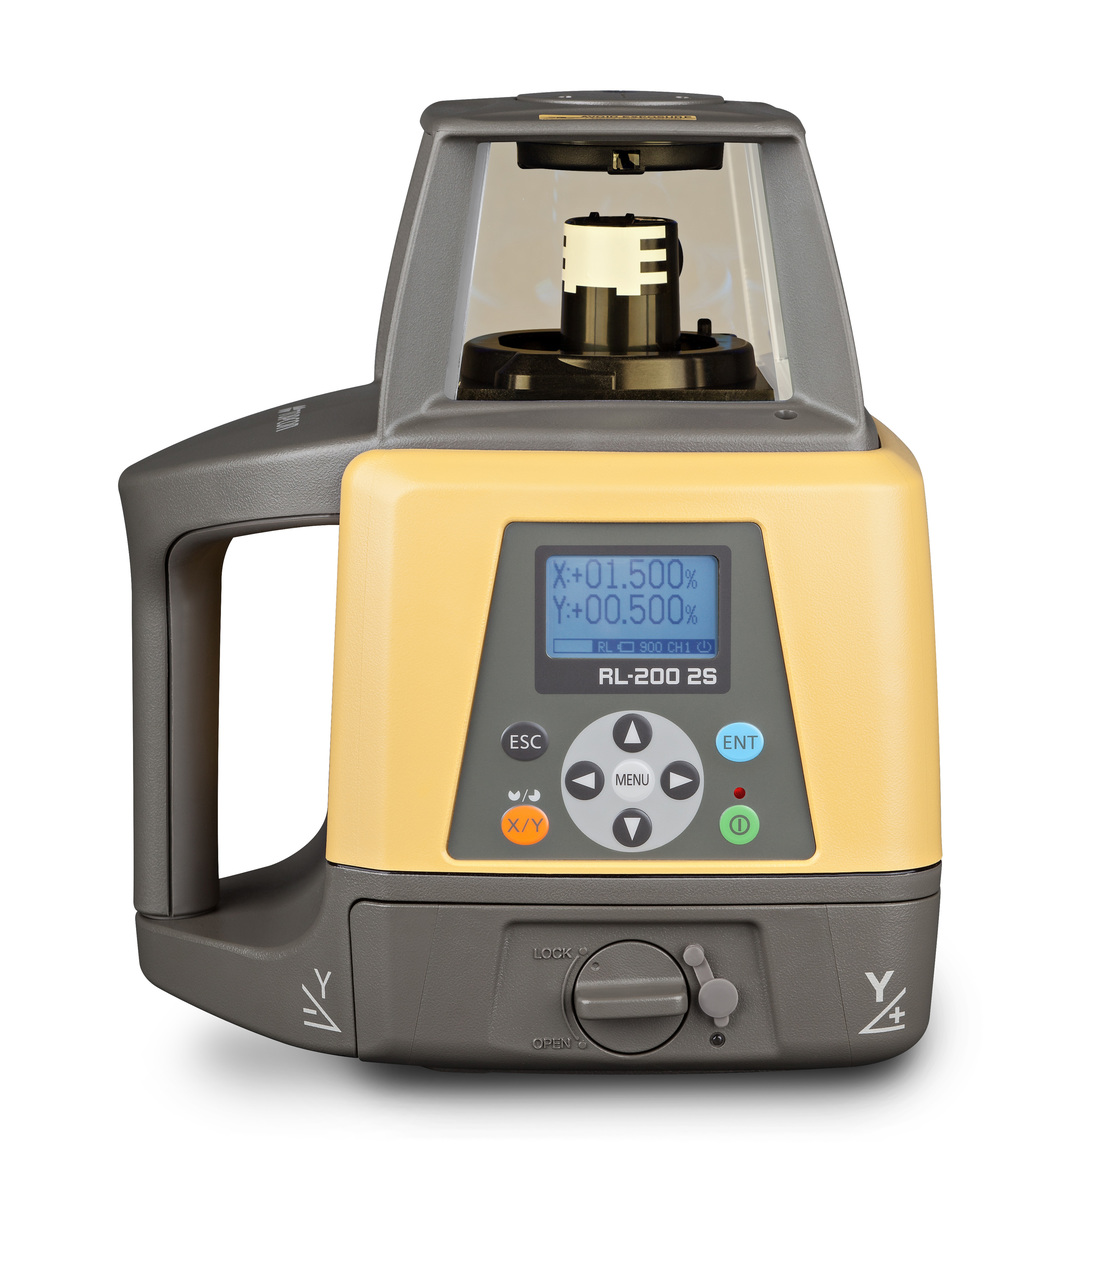 Topcon RL-200 1S High Accuracy Slope Laser Alkaline